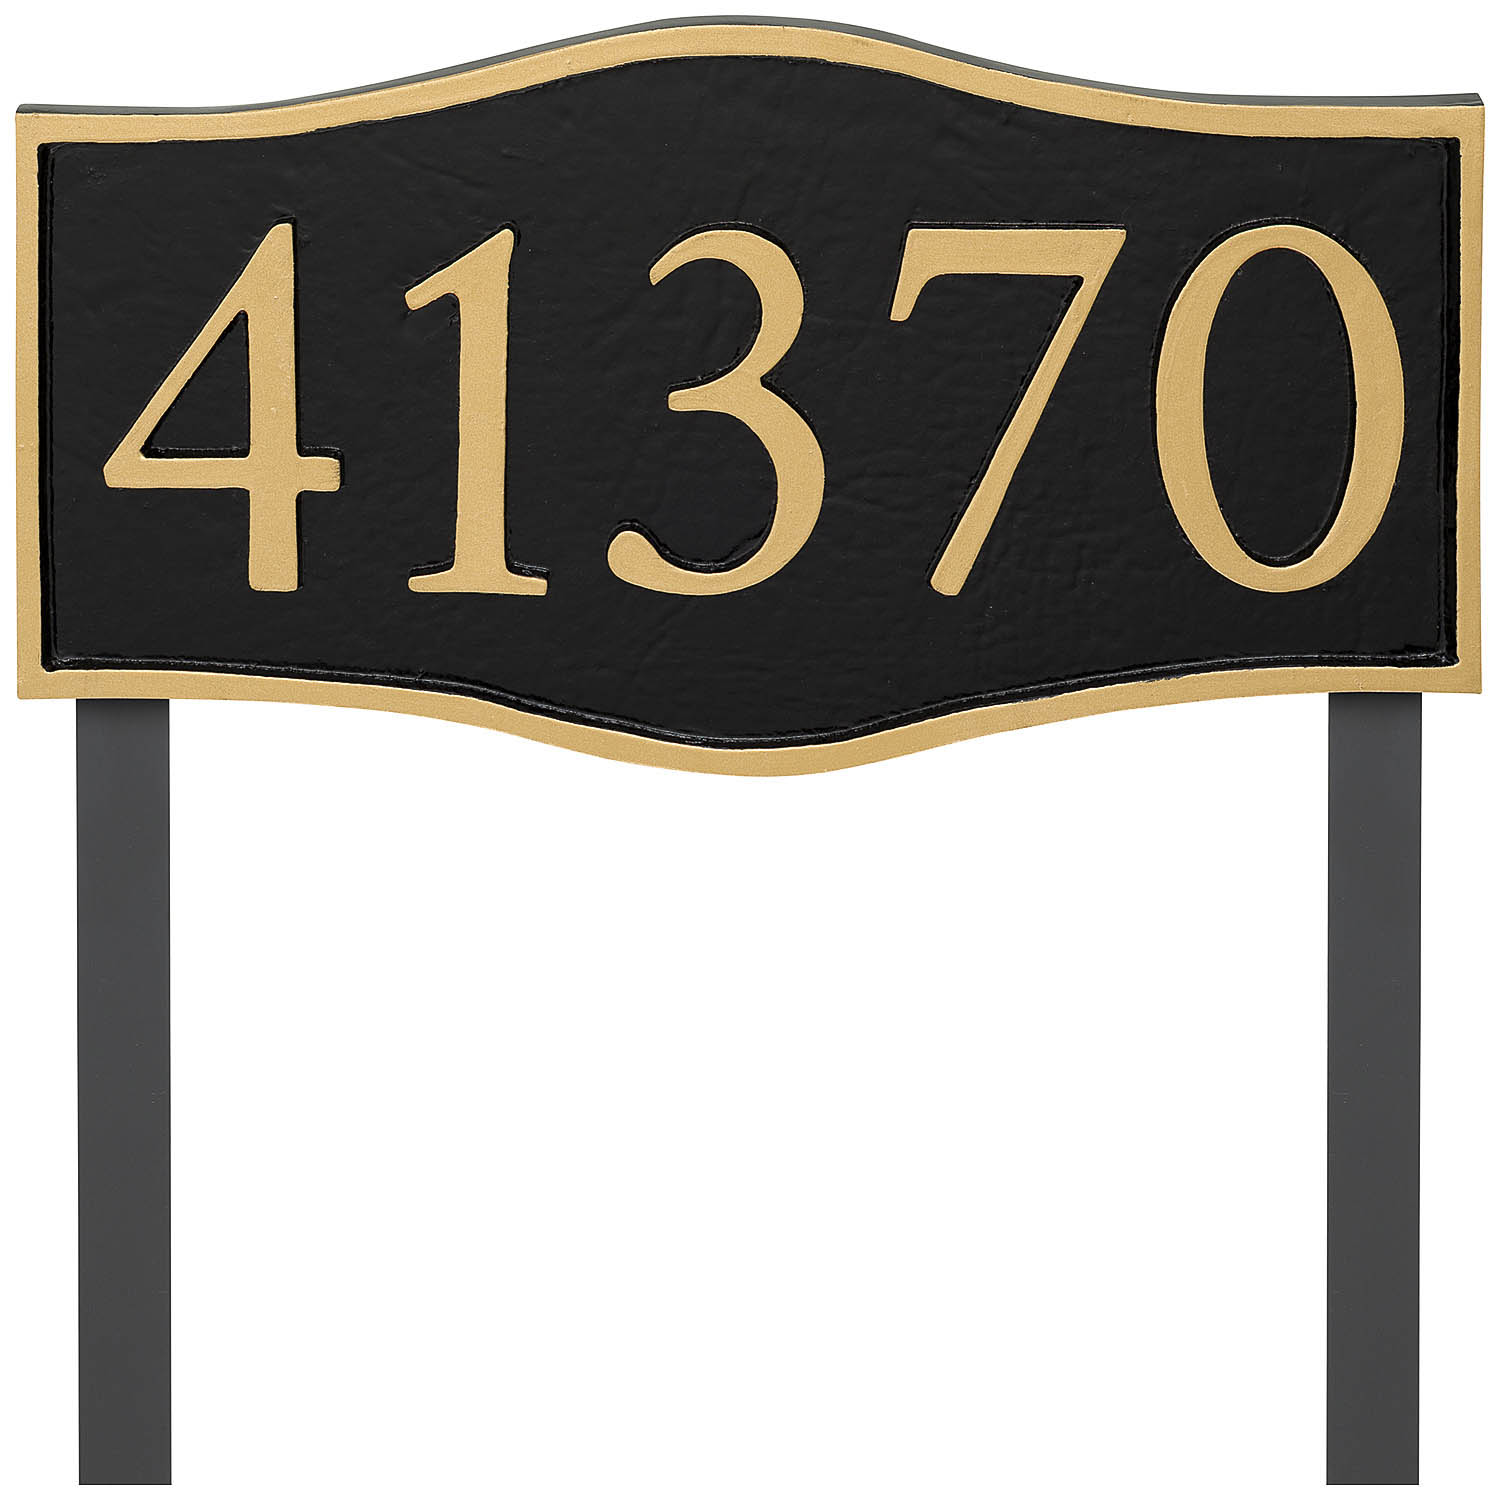 Double Arch Serif Economy Address Plaque (holds up to 5 characters)